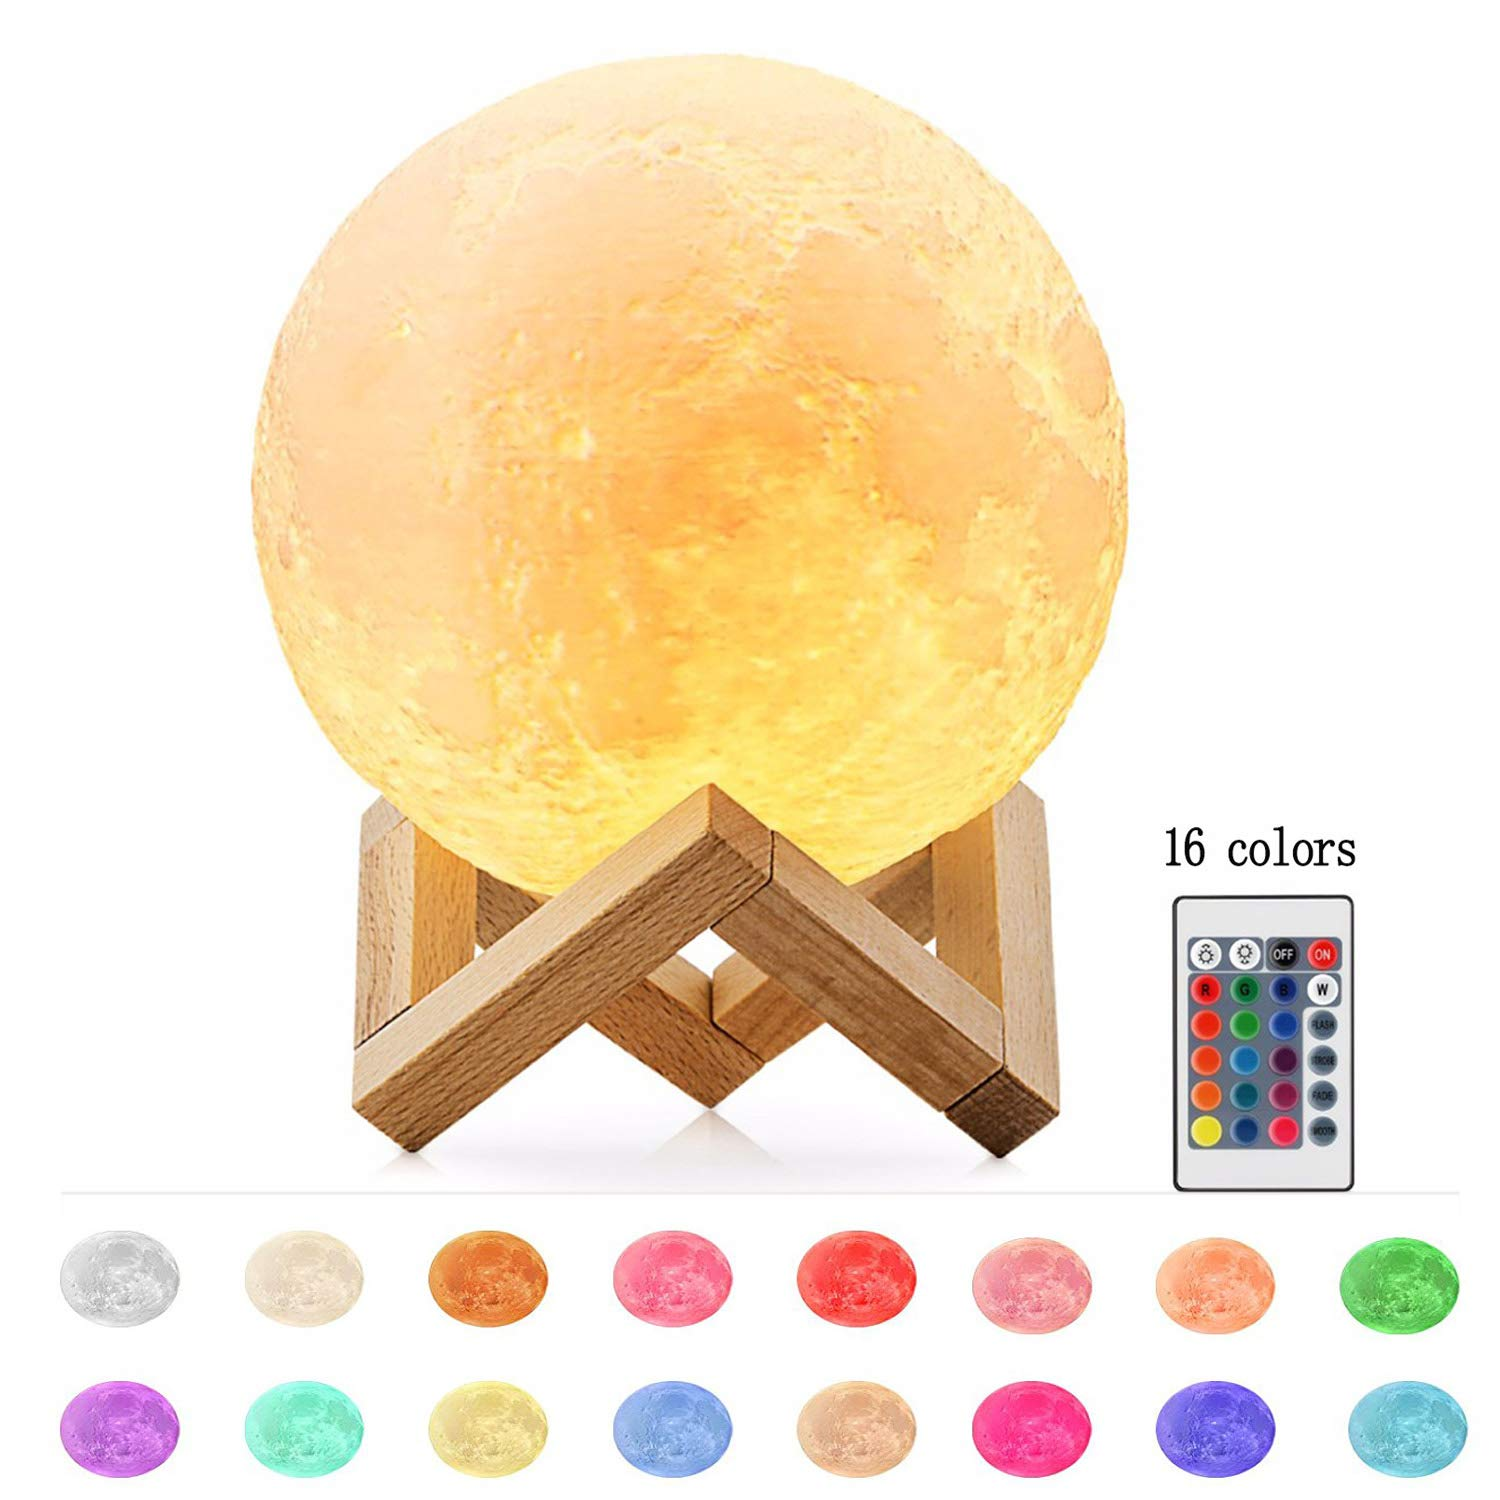 Moon Lamp 16 Colors 3D Printing, Yooker Remote Control & Touch Sensor Night Light LED Lunar Lamp with Stand, Remote & USB Cable(5.9inch) for Kids/Birthday /Anniversary/Christmas Gifts